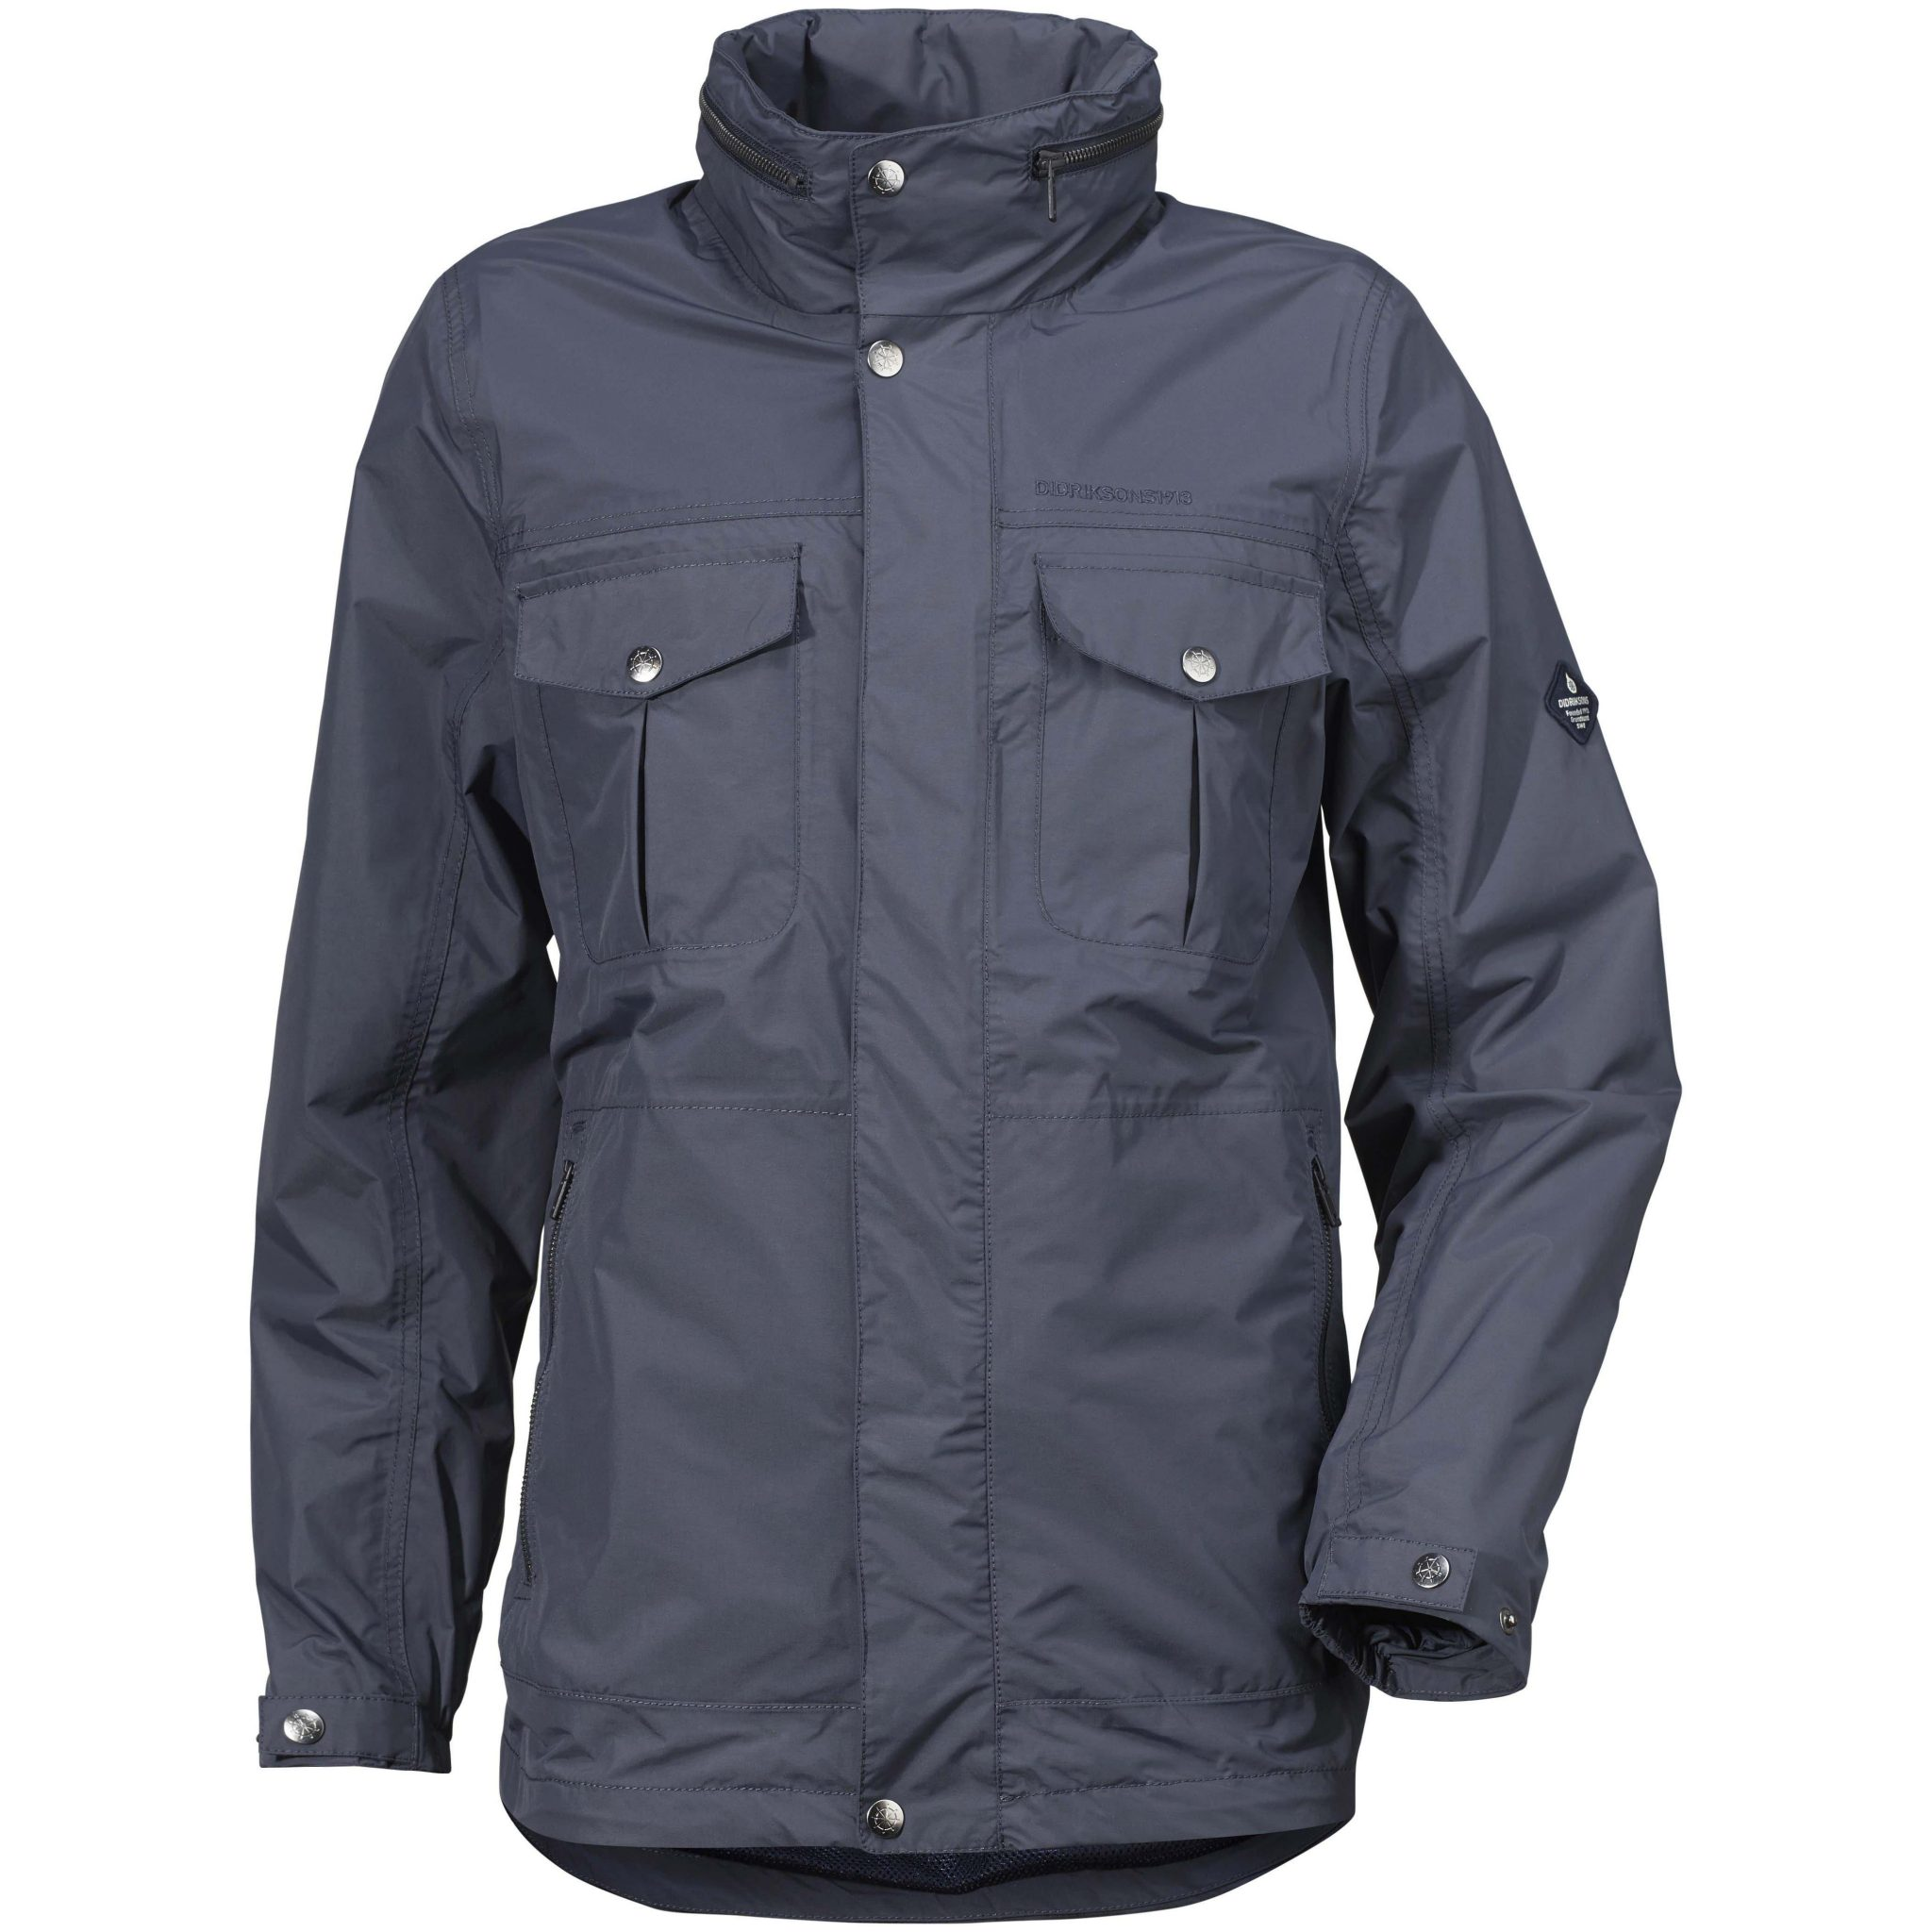 Didrikson Robert Jacket